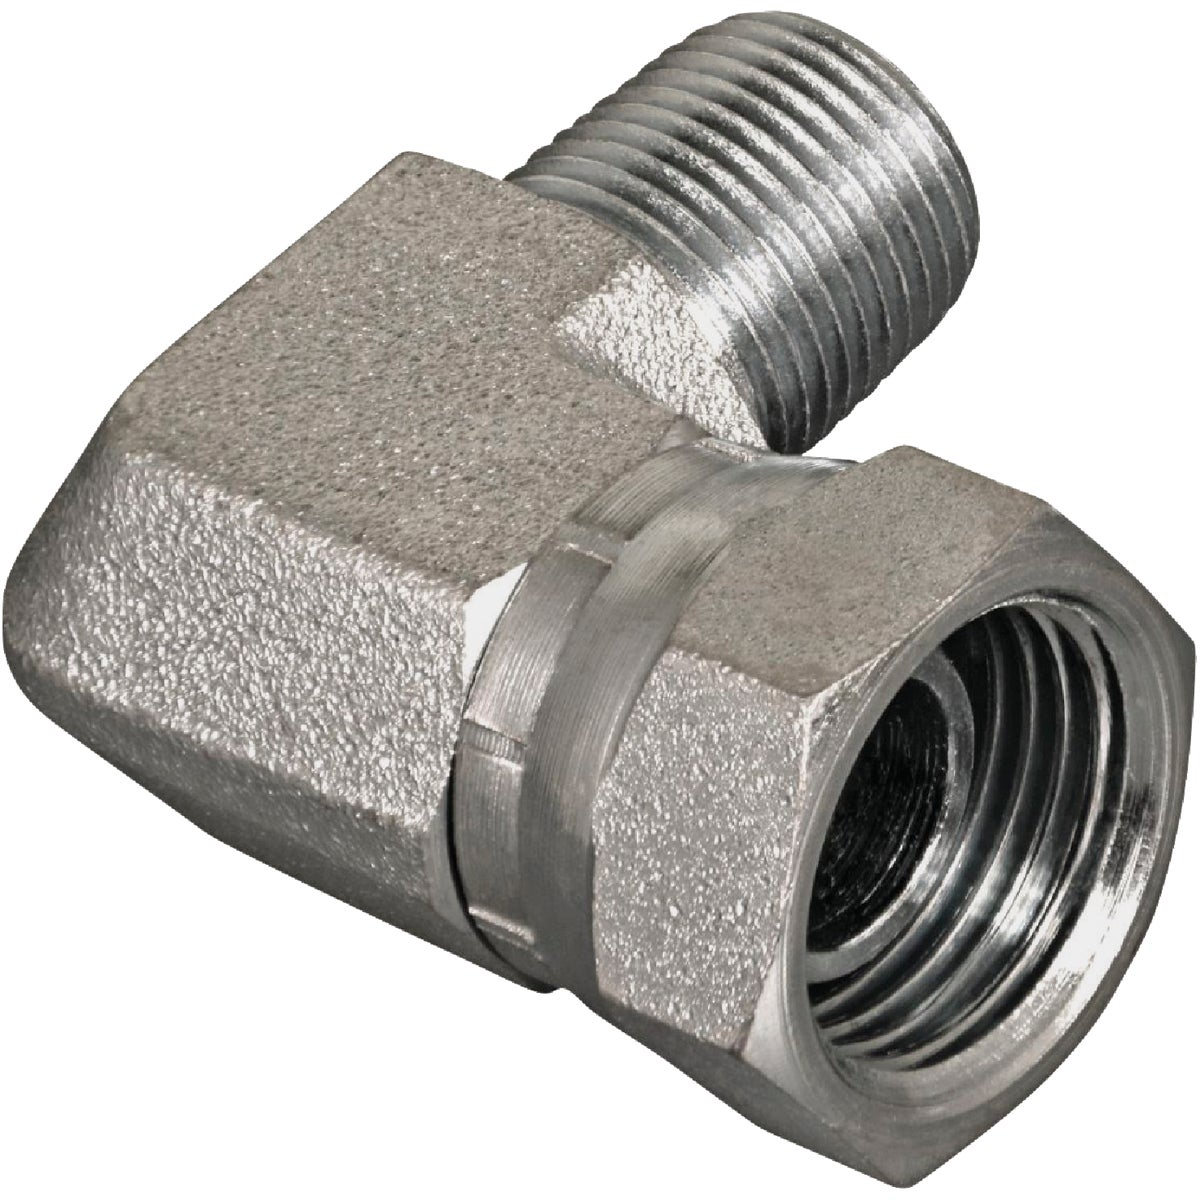 1/2MX1/2F SW HYD ADAPTER